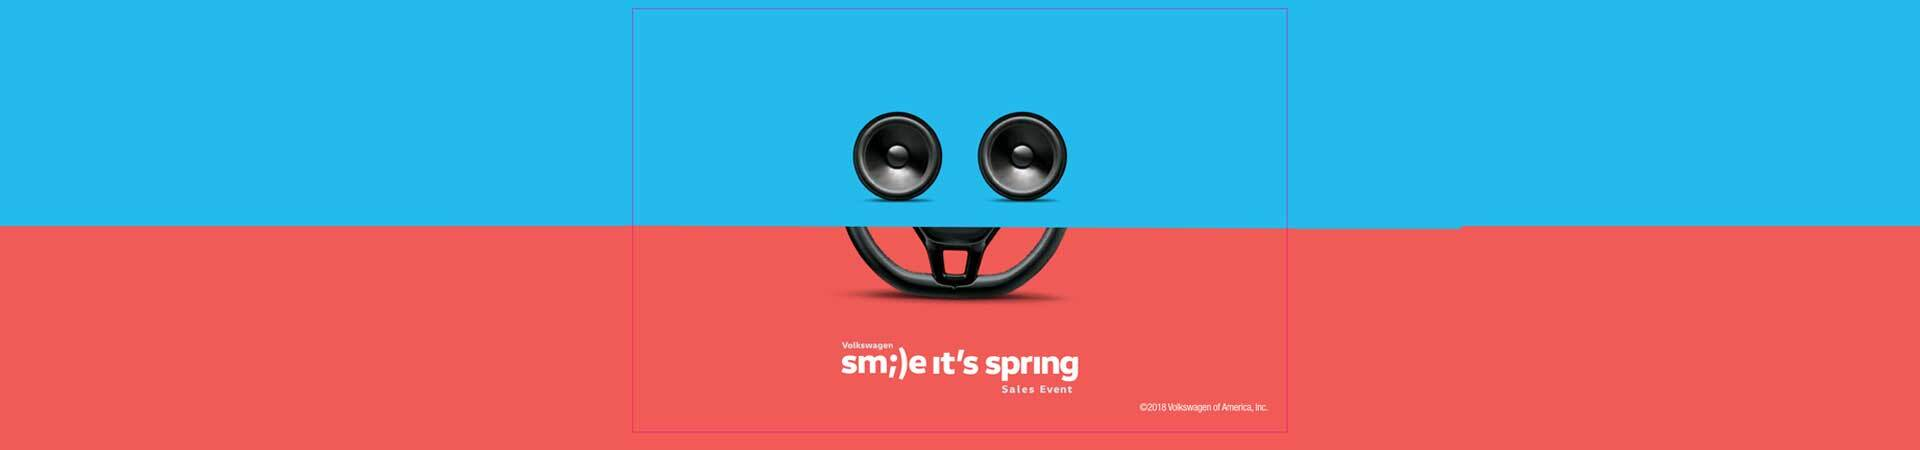 Smile its spring